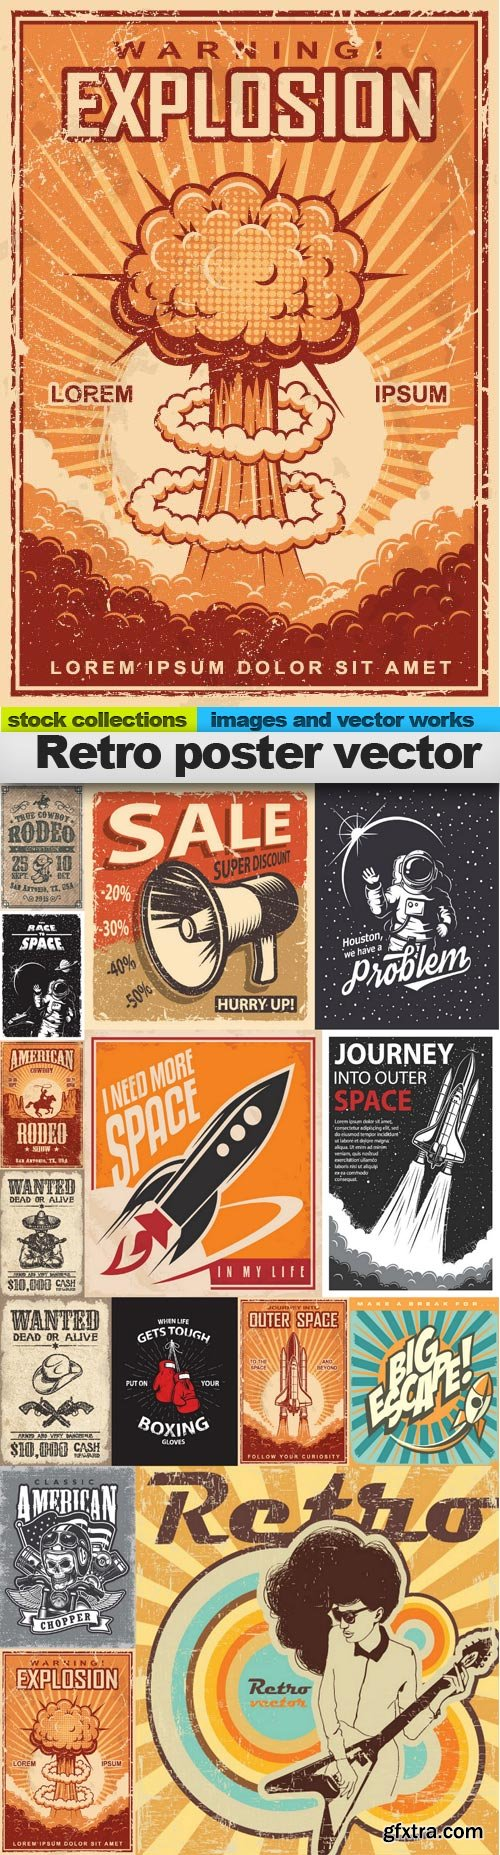 Retro poster vector, 15 x EPS